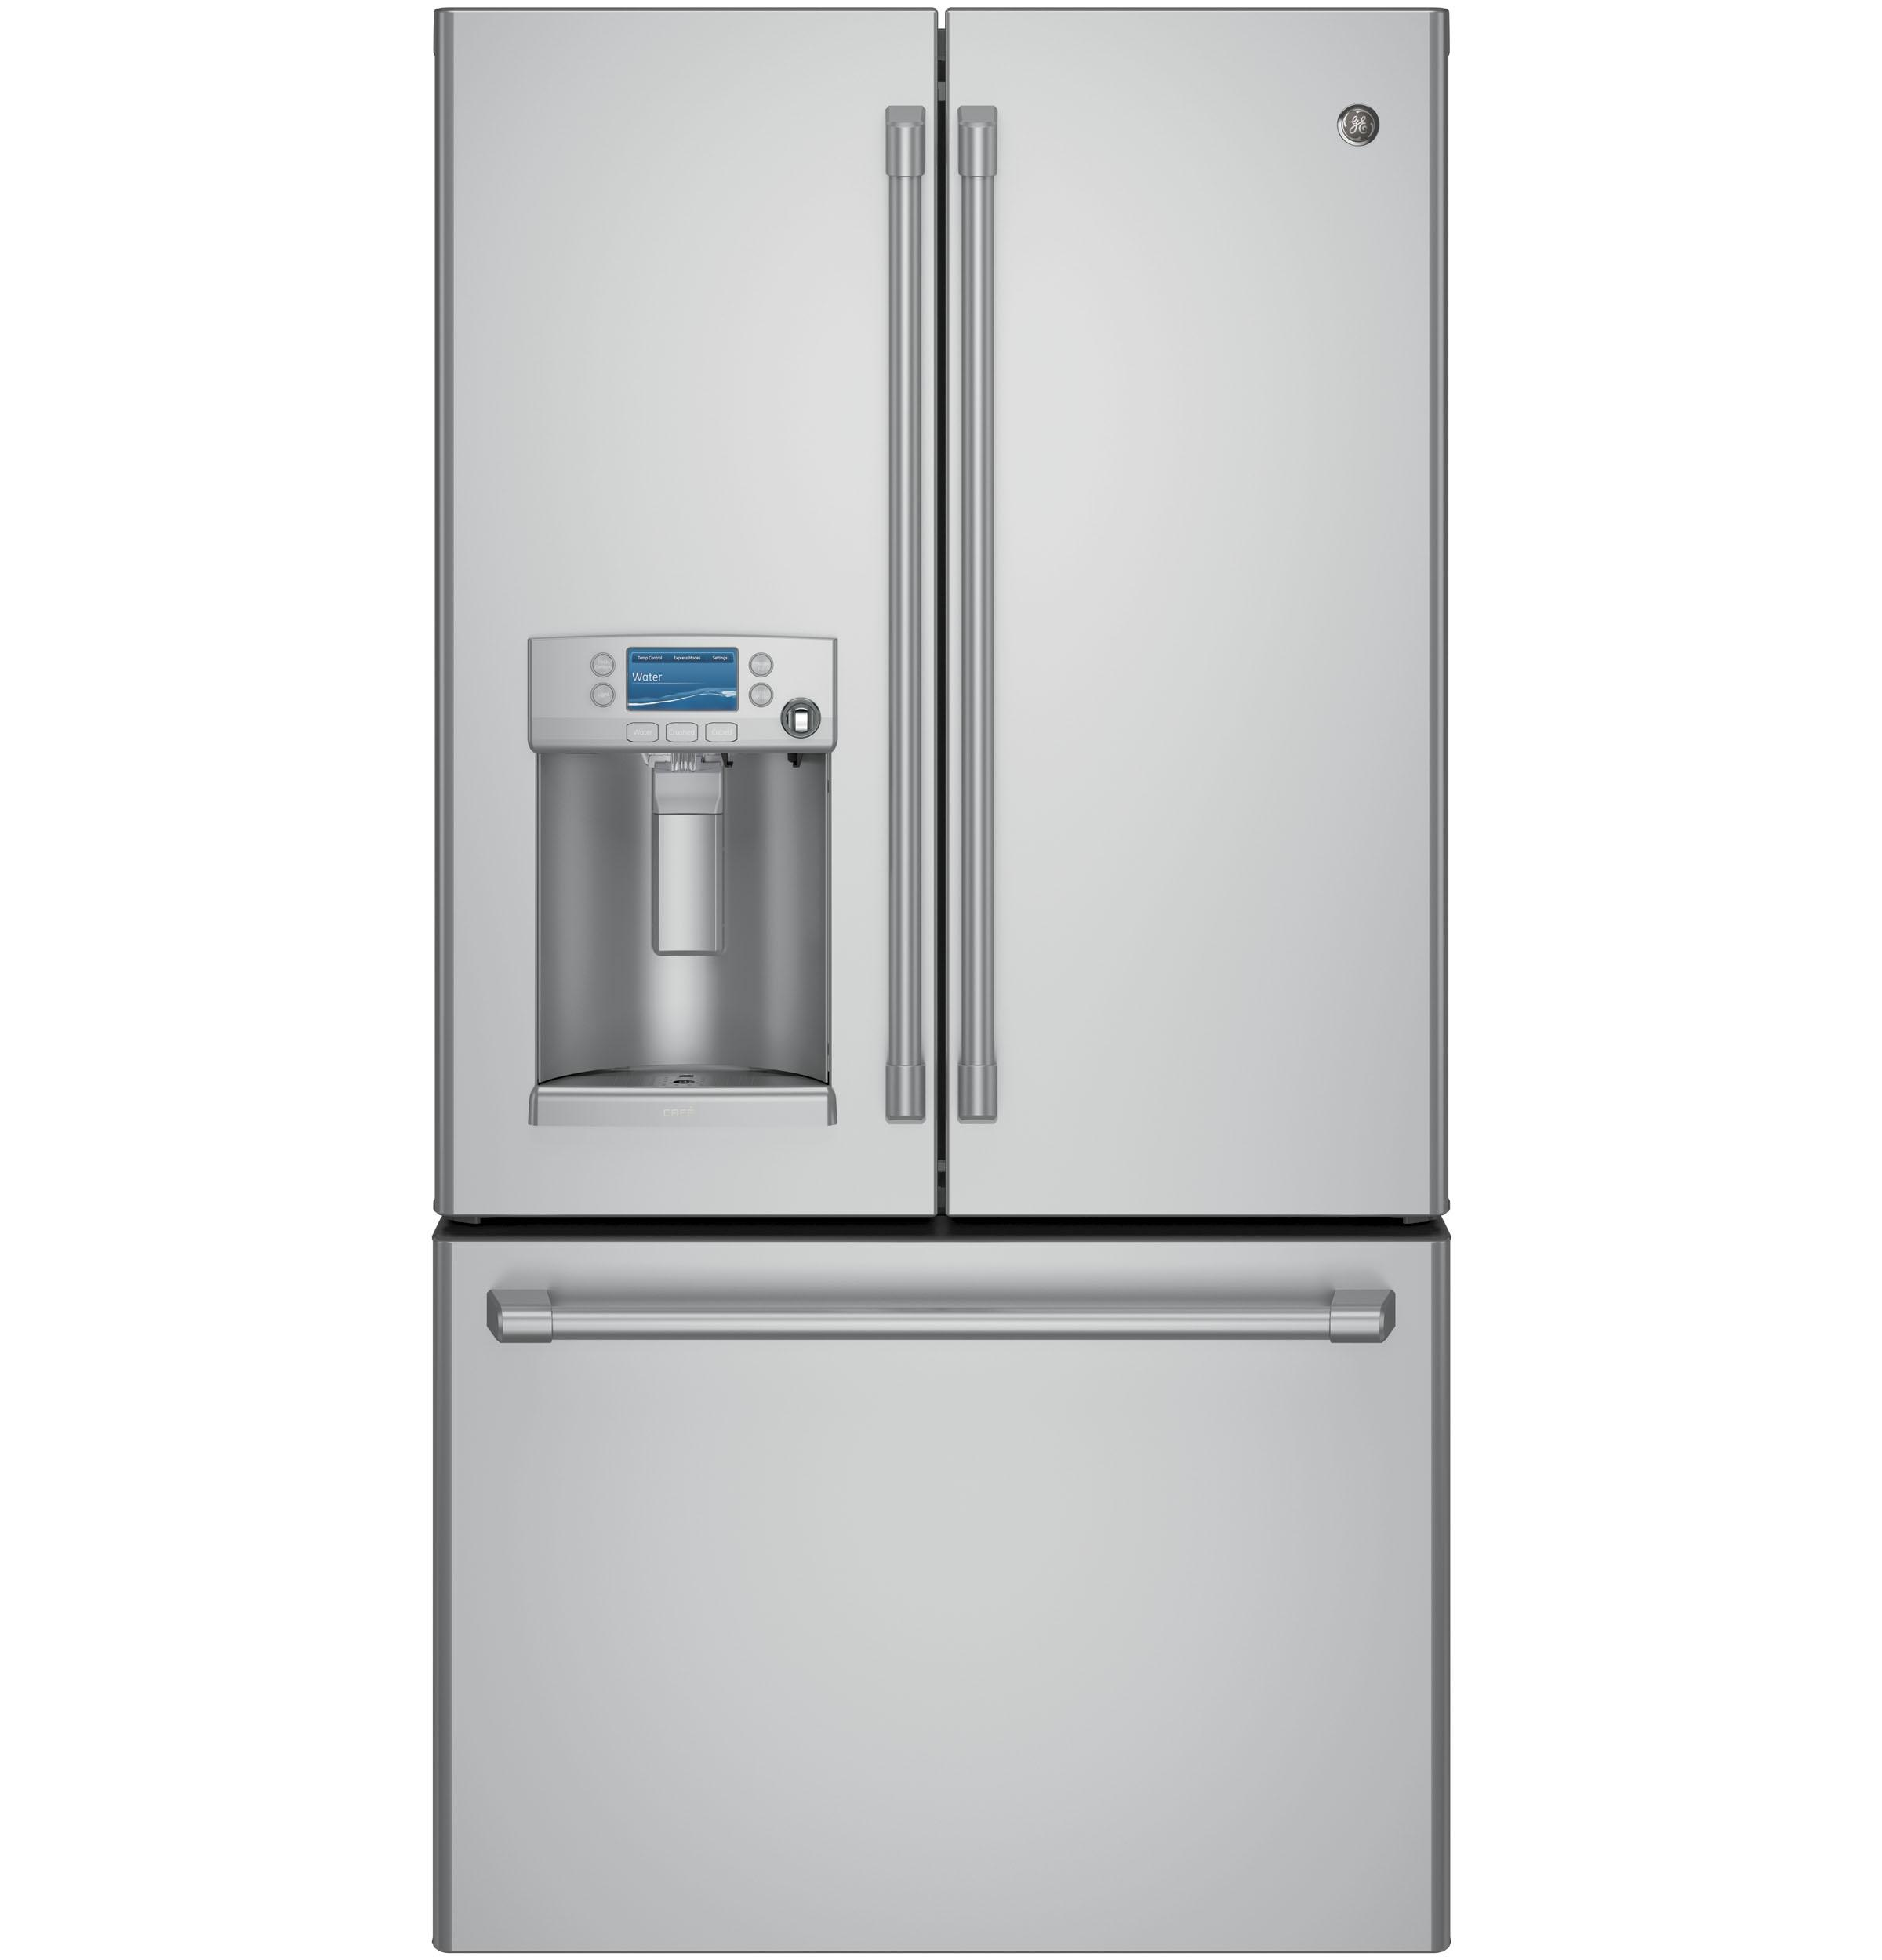 GE Cafe(TM) Series ENERGY STAR(R) 22.2 Cu. Ft. Counter-Depth French-Door Refrigerator with Keurig(R) K-Cup(R) Brewing System  Stainless Steel